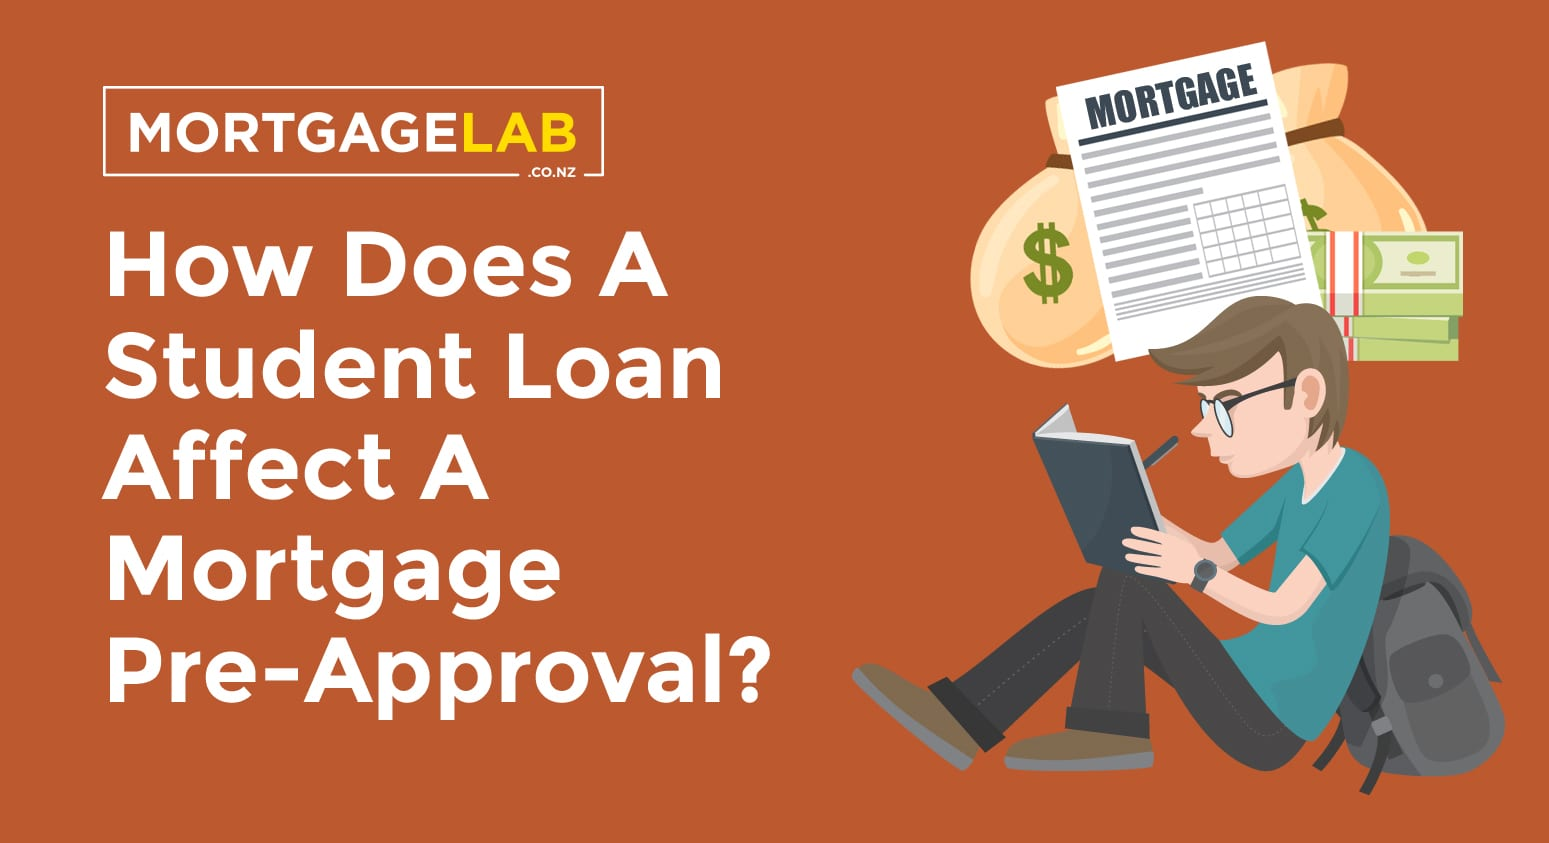 How Does A Student Loan Affect A Mortgage Pre-Approval